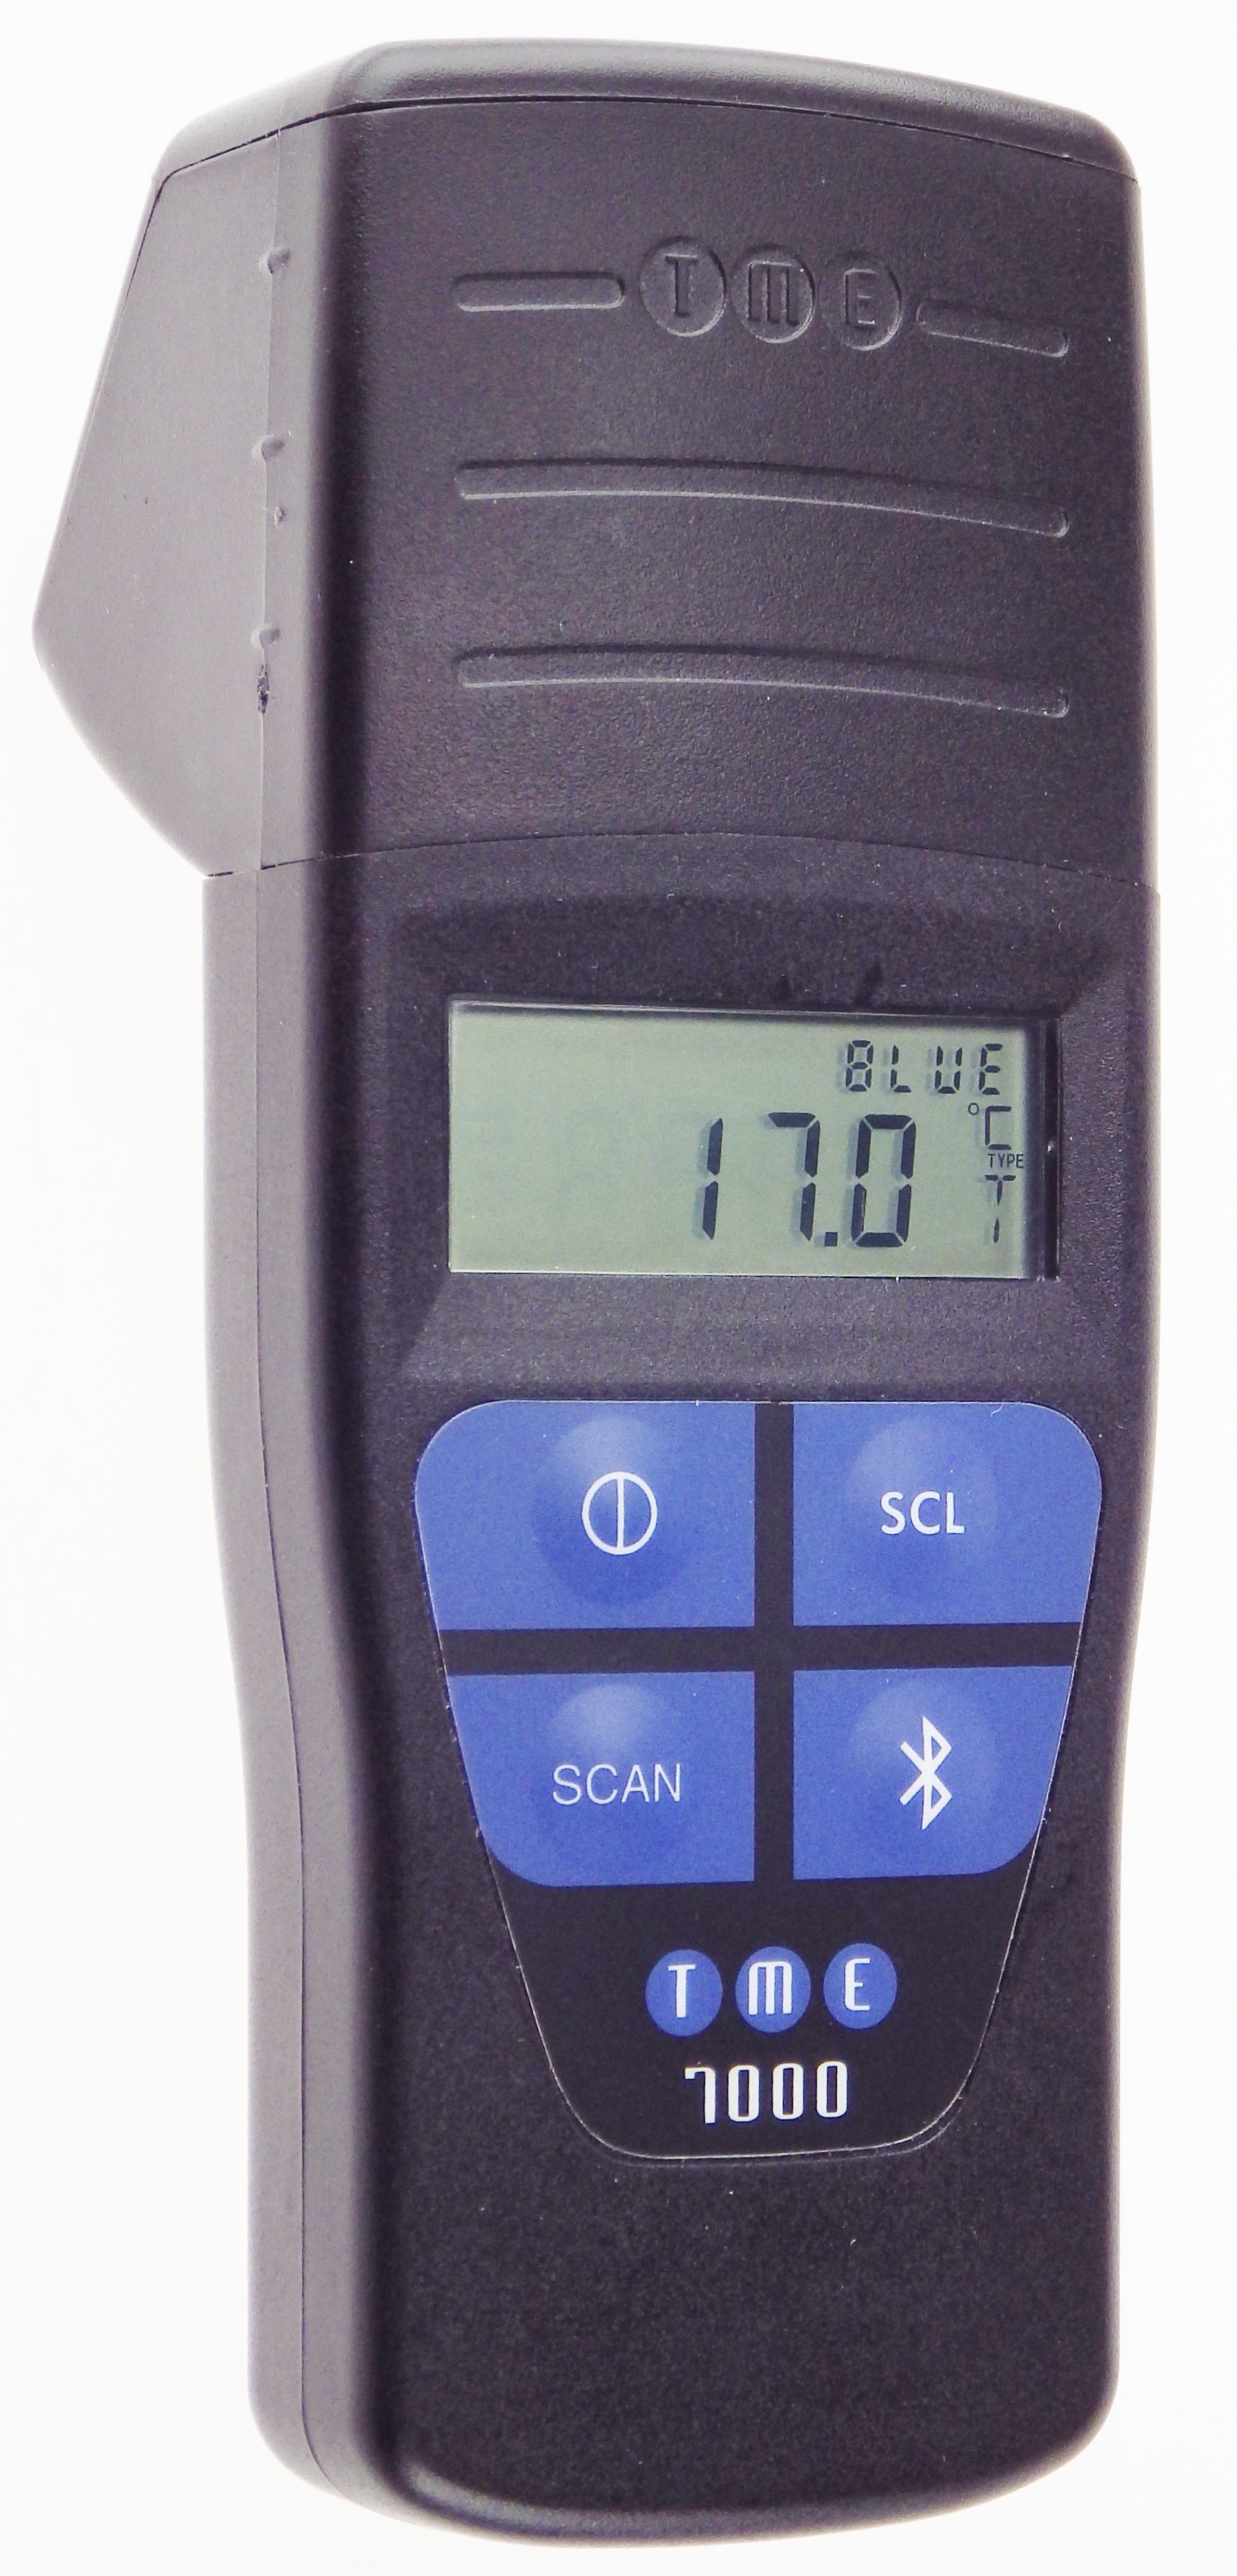 With a Barcode Scanner to record product information, and USB interface for easy downloading, this Thermocouple Thermome